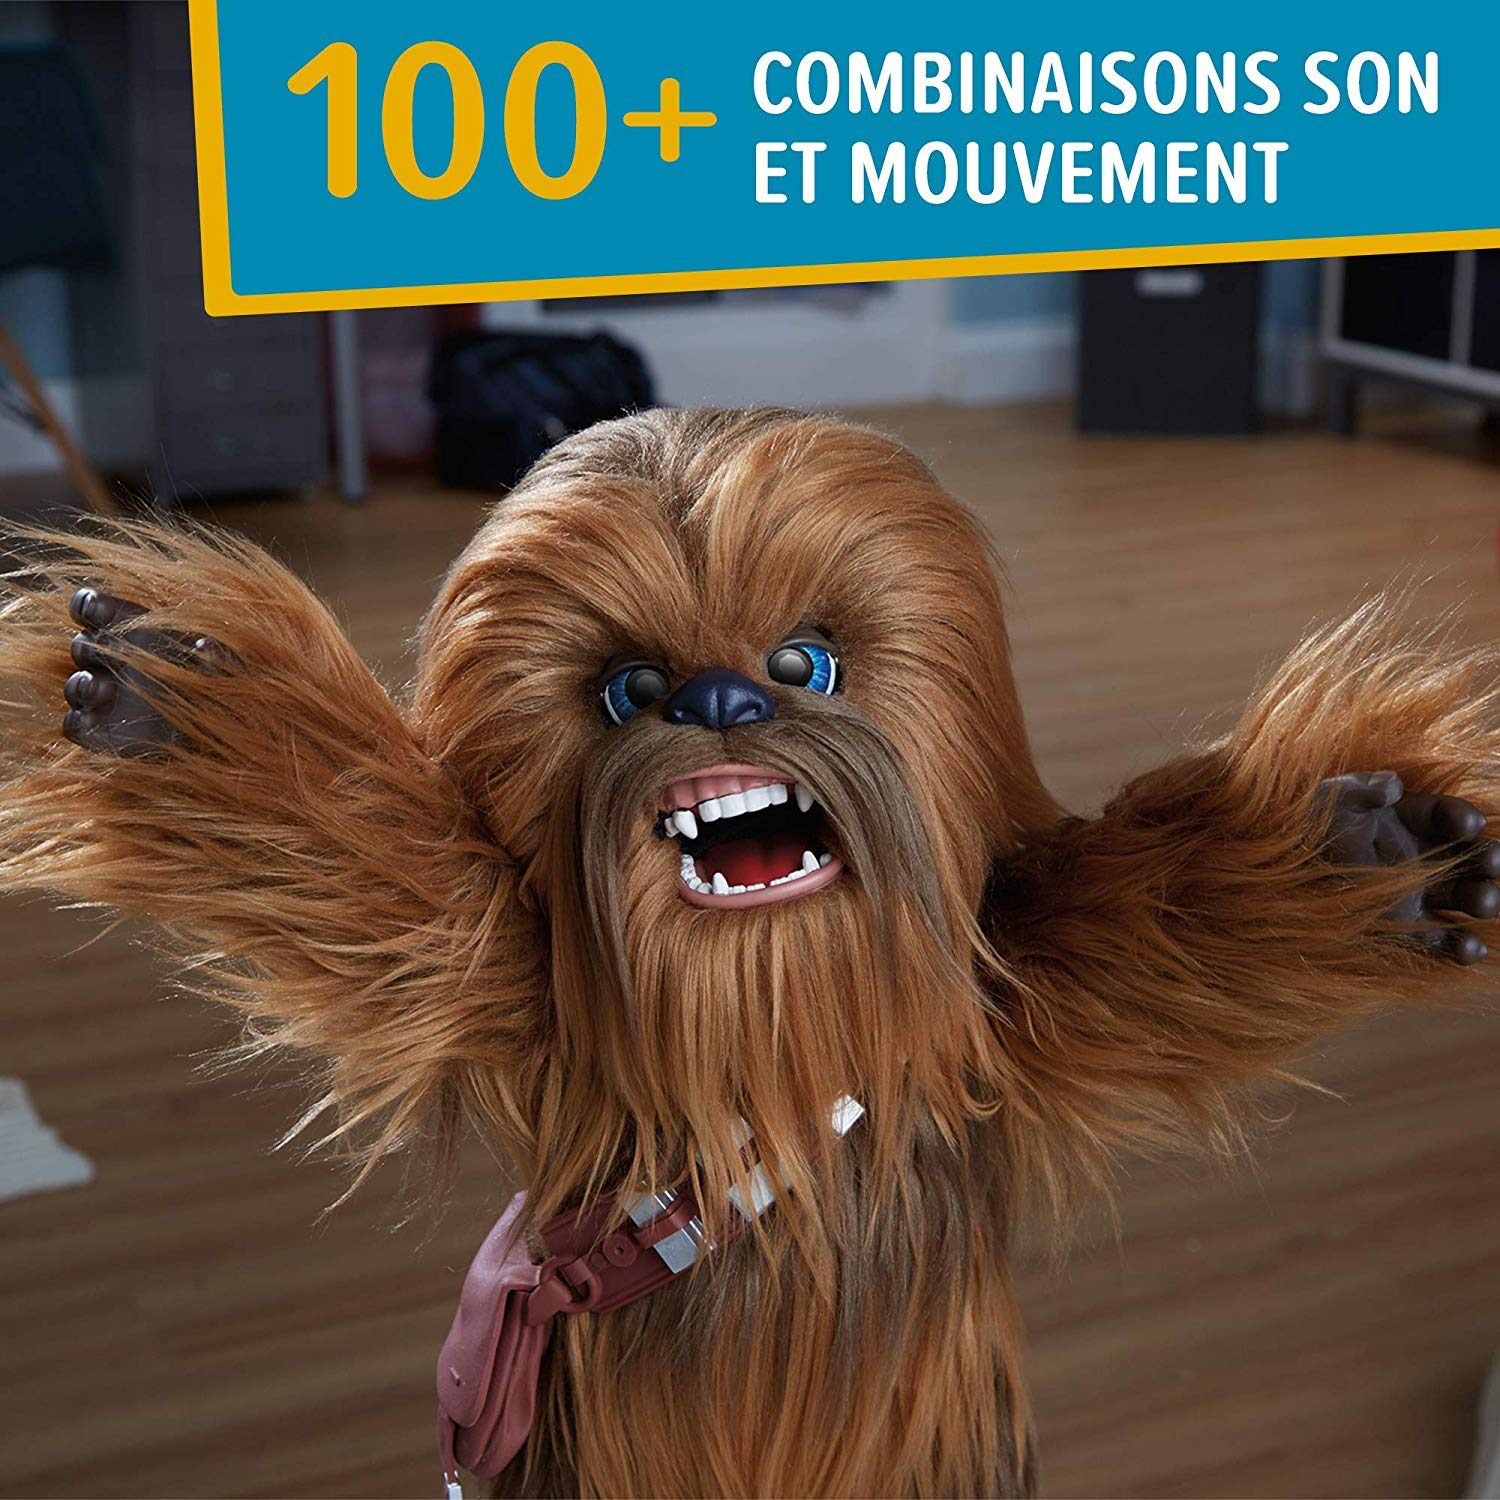 Photo of Bon Plan Amazon — Peluche Chewie à seulement 34,95€ (au lieu de 129,99€)